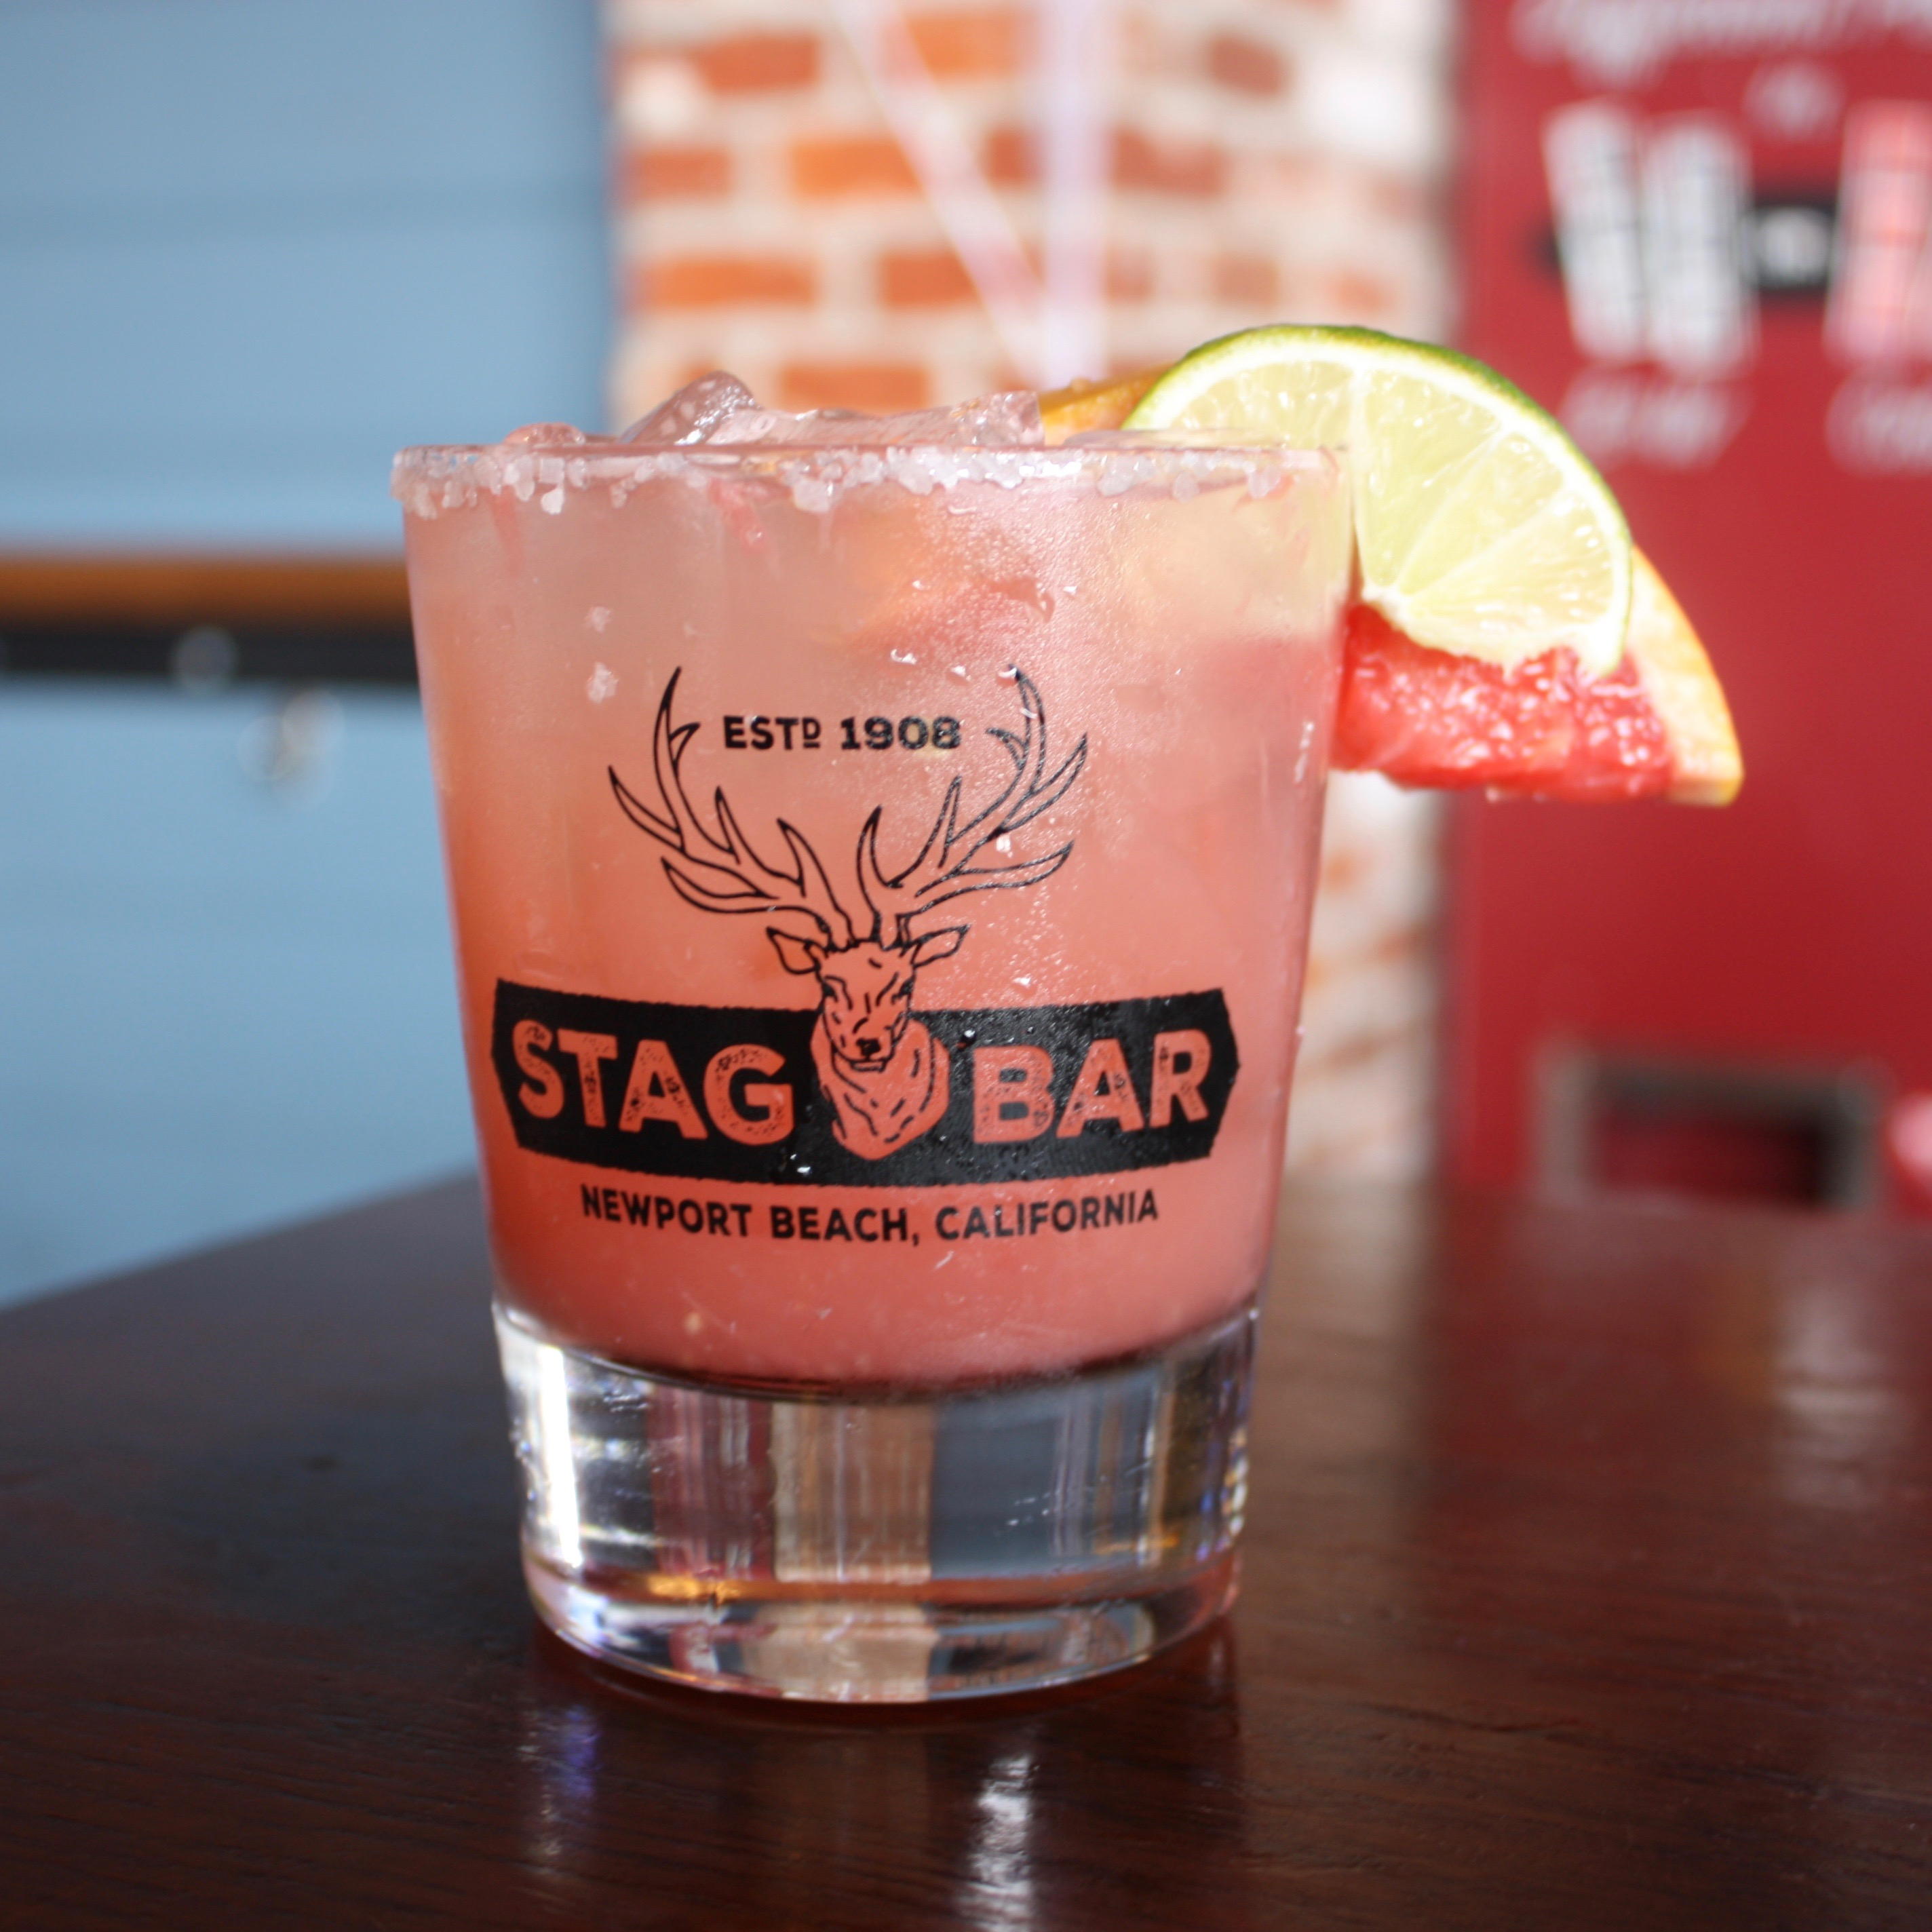 Try Stag Bar's Salty Dog